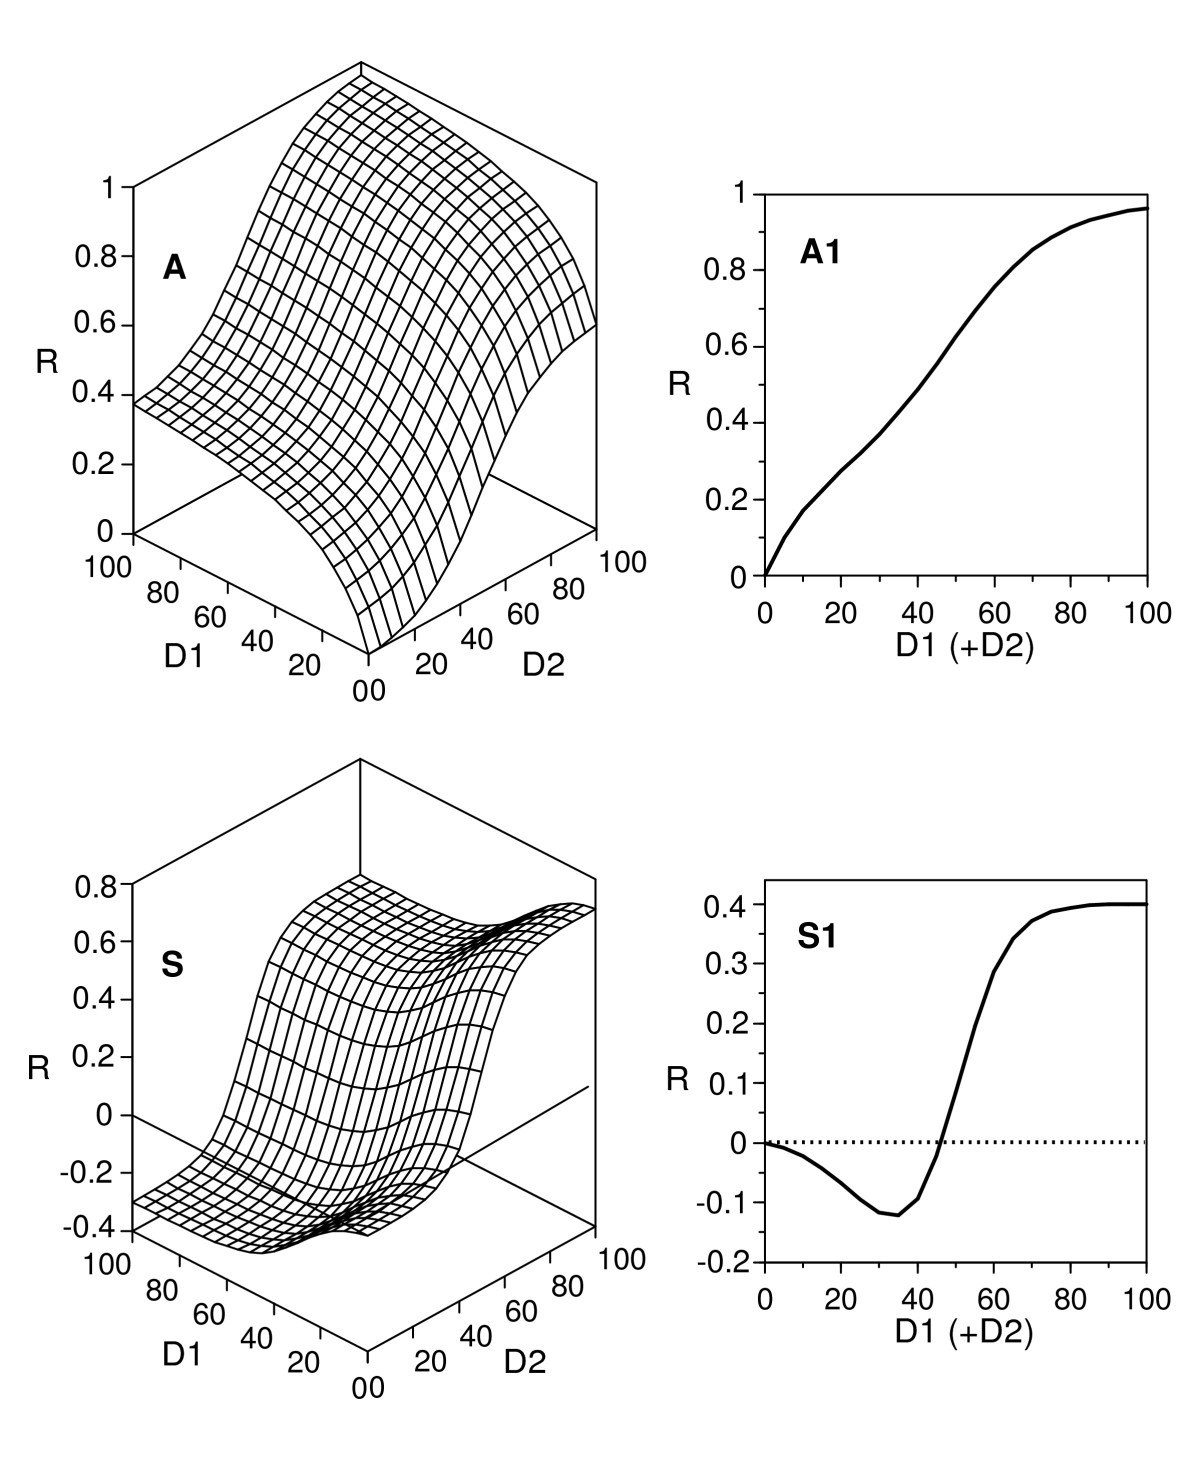 http://static-content.springer.com/image/art%3A10.1186%2F1471-2180-10-220/MediaObjects/12866_2009_Article_1176_Fig9_HTML.jpg